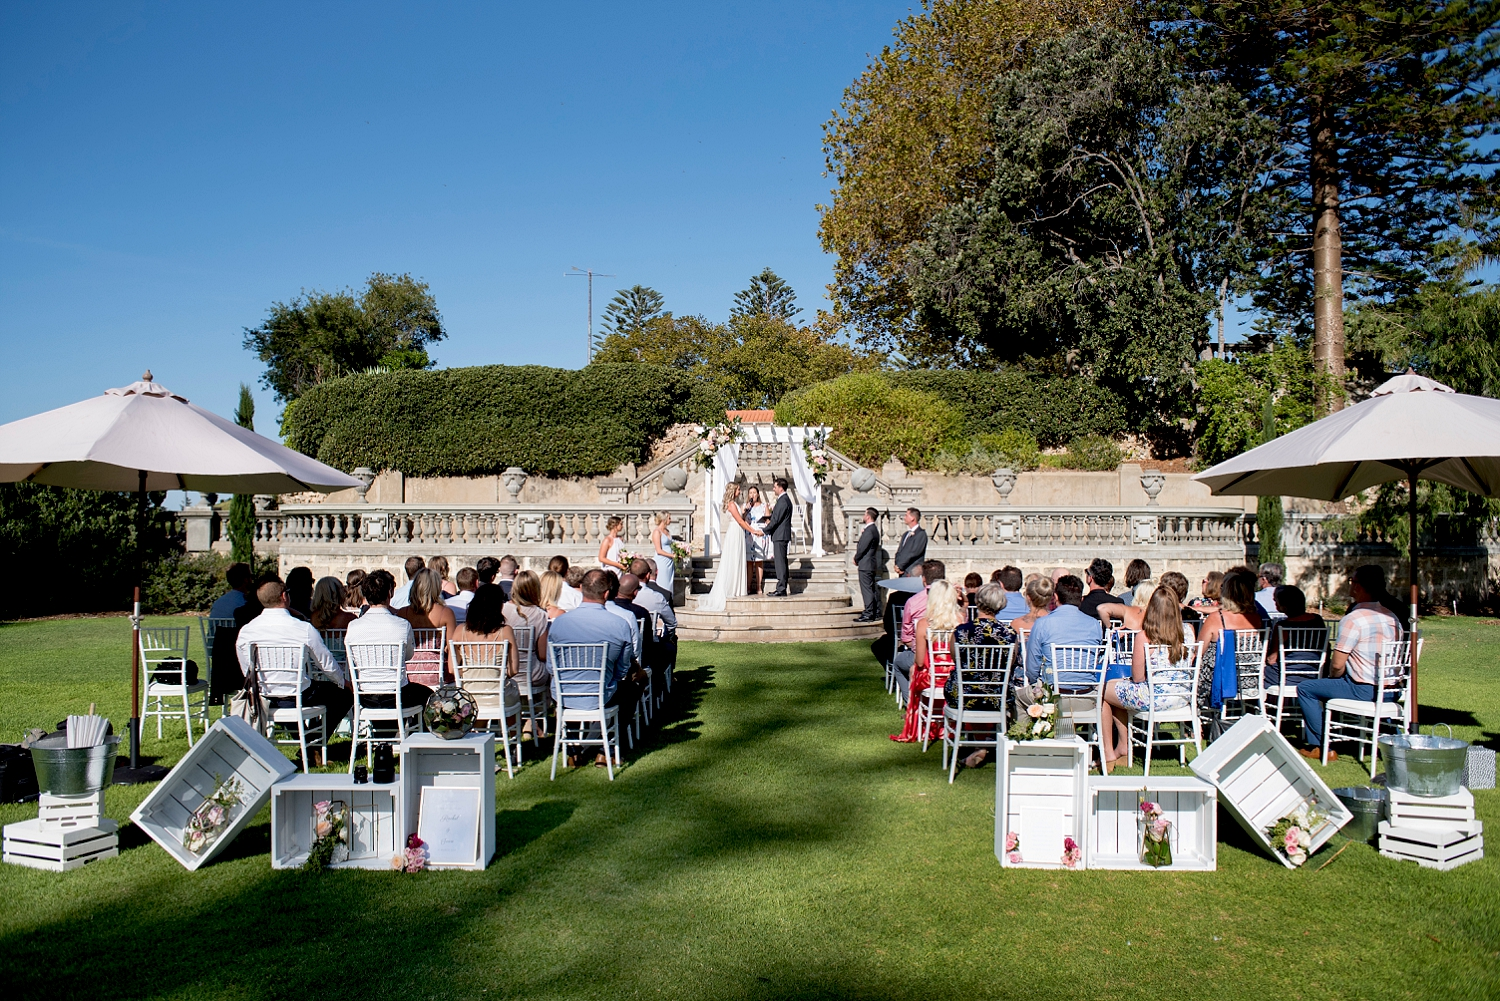 33_cottesloe civic centre wedding perth main lawn stairs.jpg